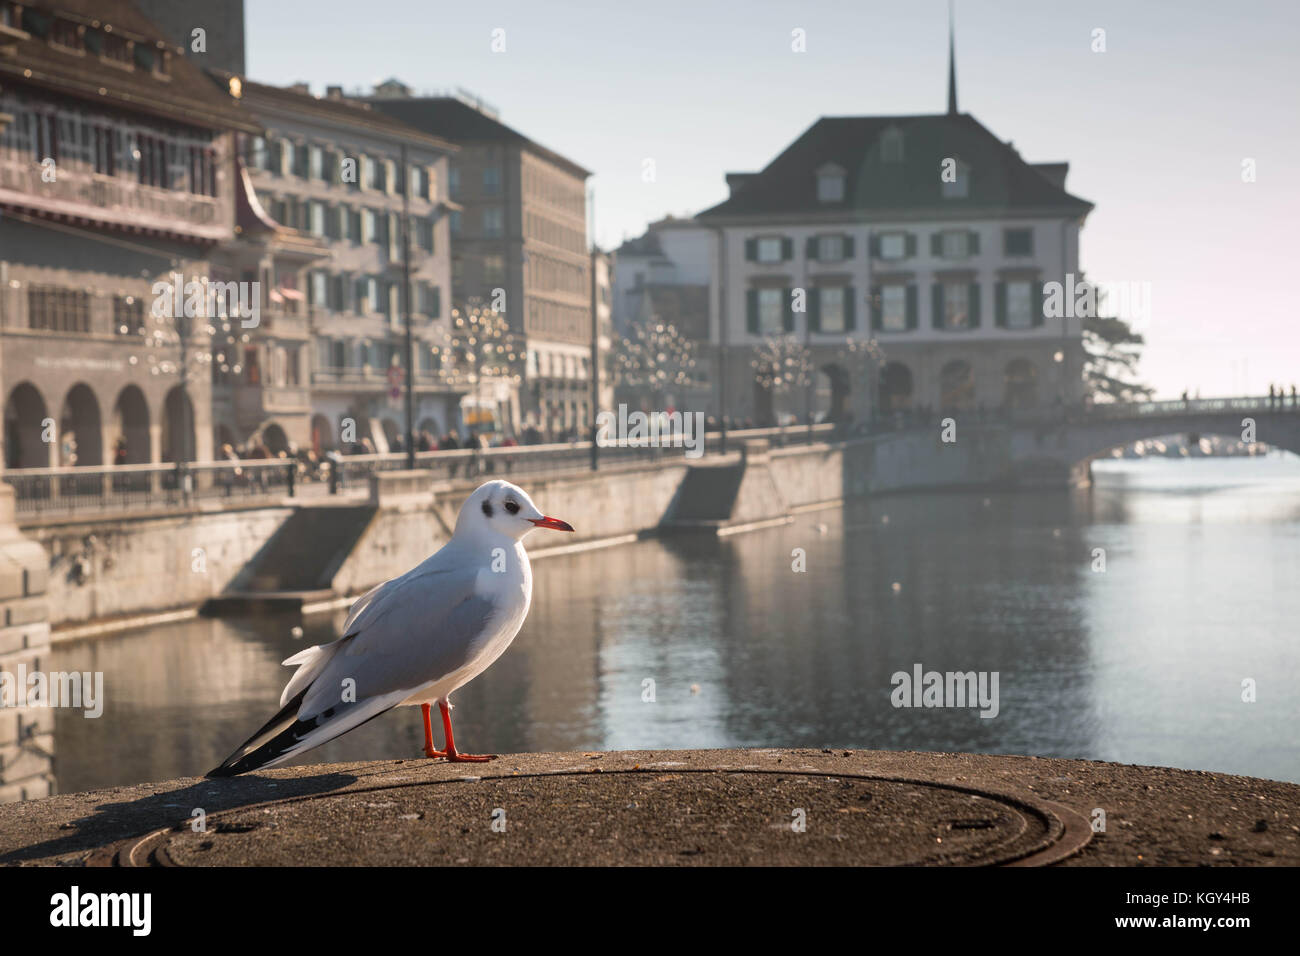 Zurich landscape with river Limmat and a seagull in the foreground - Stock Image